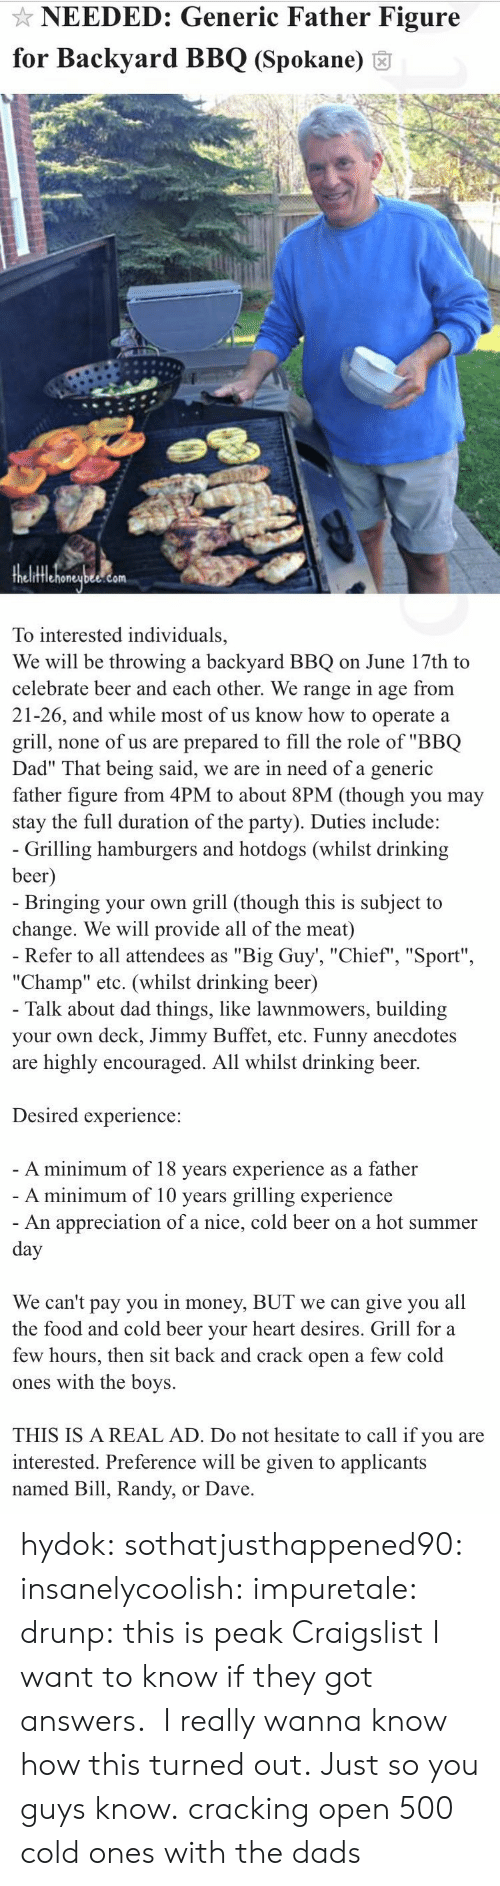 "Beer, Craigslist, and Dad: NEEDED: Generic Father Figure  for Backyard BBQ (Spokane) 6  fflehoneubee.com  To interested individuals,  We will be throwing a backyard BBQ on June 17th to  celebrate beer and each other. We range in age from  21-26, and while most of us know how to operate a  grill, none of us are prepared to fill the role of ""BBQ  Dad"" That being said, we are in need of a generic  father figure from 4PM to about 8PM (though you may  stay the full duration of the party). Duties include:   Grilling hamburgers and hotdogs (whilst drinking  beer  Bringing your own grill (though this is subject to  change. We will provide all of the meat)  Refer to all attendees as ""Big Guy', ""Chief"", ""Sport""  ""Champ"" etc. (whilst drinking beer)  Talk about dad things, like lawnmowers, building  your own deck, Jimmy Buffet, etc. Funny anecdotes  are highly encouraged. All whilst drinking beer.  Desired experience:  A minimum of 18 vears experience as a father  A minimum of 10 years grilling experience  An appreciation of a nice, cold beer on a hot summer  We can't pay you in money, BUT we can give you all  the food and cold beer vour heart desires. Grill for a  few hours, then sit back and crack open a few cold  ones with the boys.  THIS IS A REAL AD. Do not hesitate to call if you are  interested. Preference will be given to applicants  named Bill, Randy, or Dave hydok:  sothatjusthappened90:  insanelycoolish:   impuretale:  drunp: this is peak Craigslist I want to know if they got answers.   I really wanna know how this turned out.               Just so you guys know.  cracking open 500 cold ones with the dads"